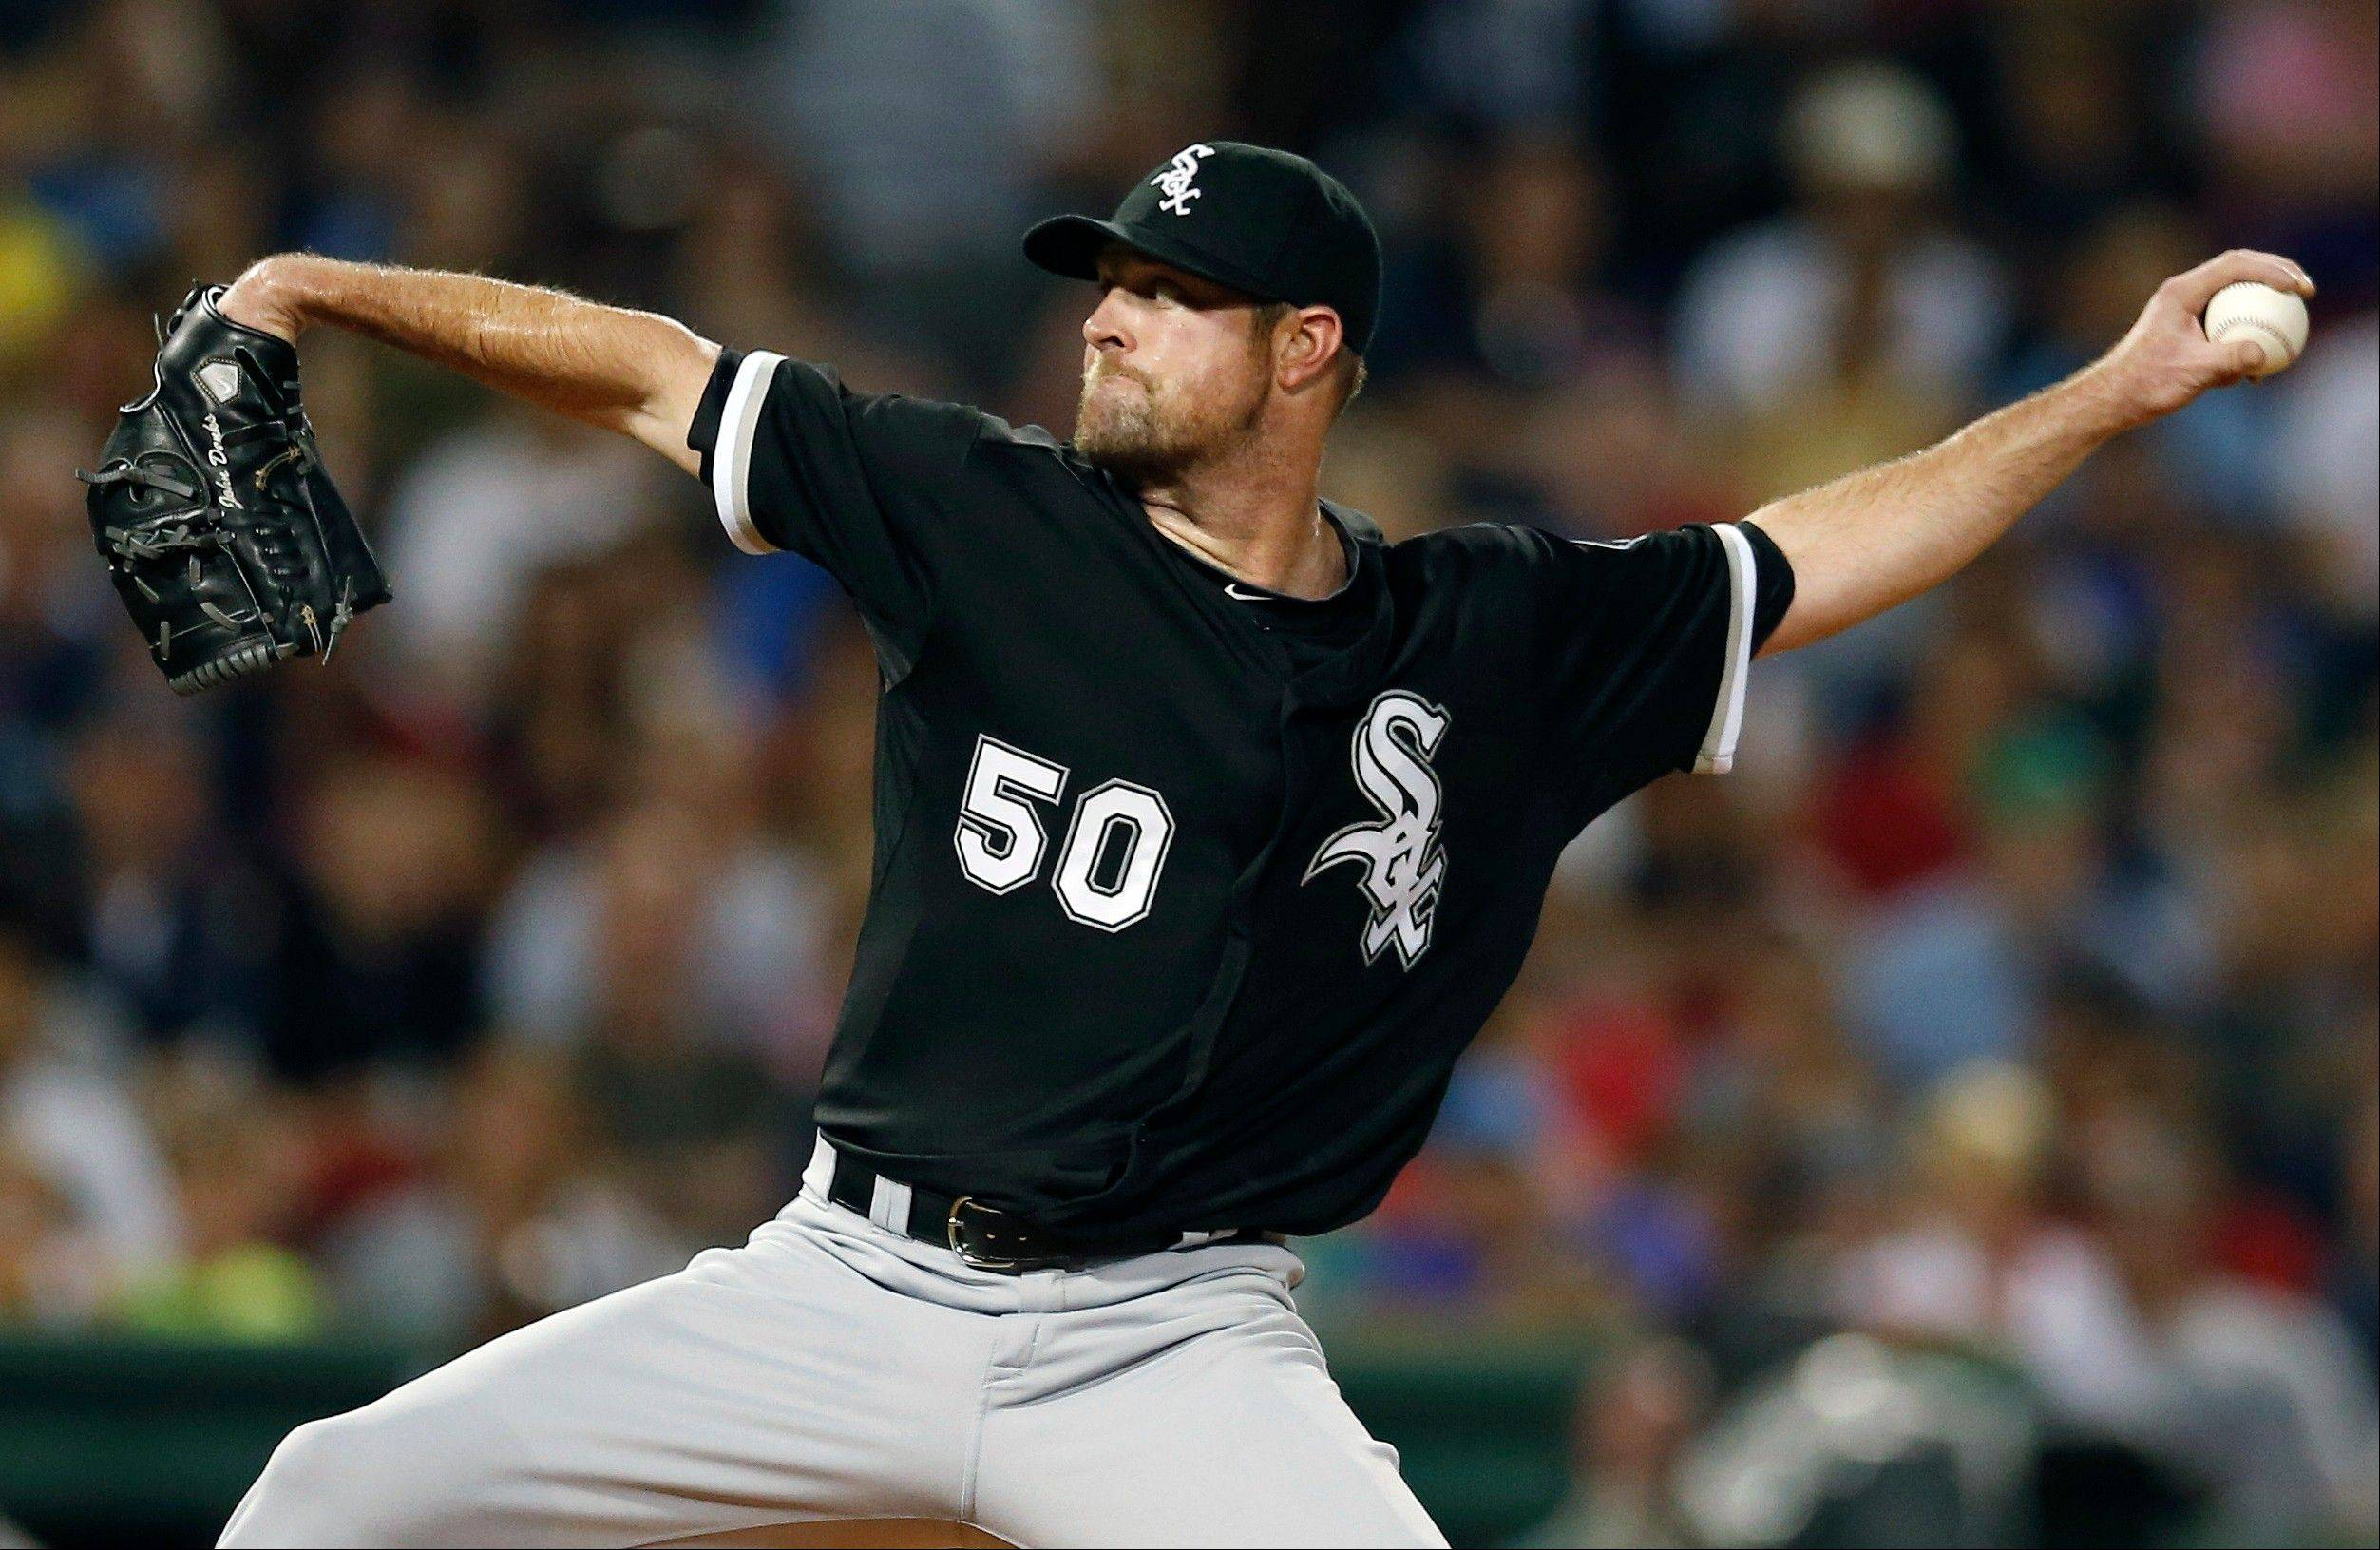 Chicago White Sox�s John Danks pitches in the first inning against the Boston Red Sox in Boston, Saturday.